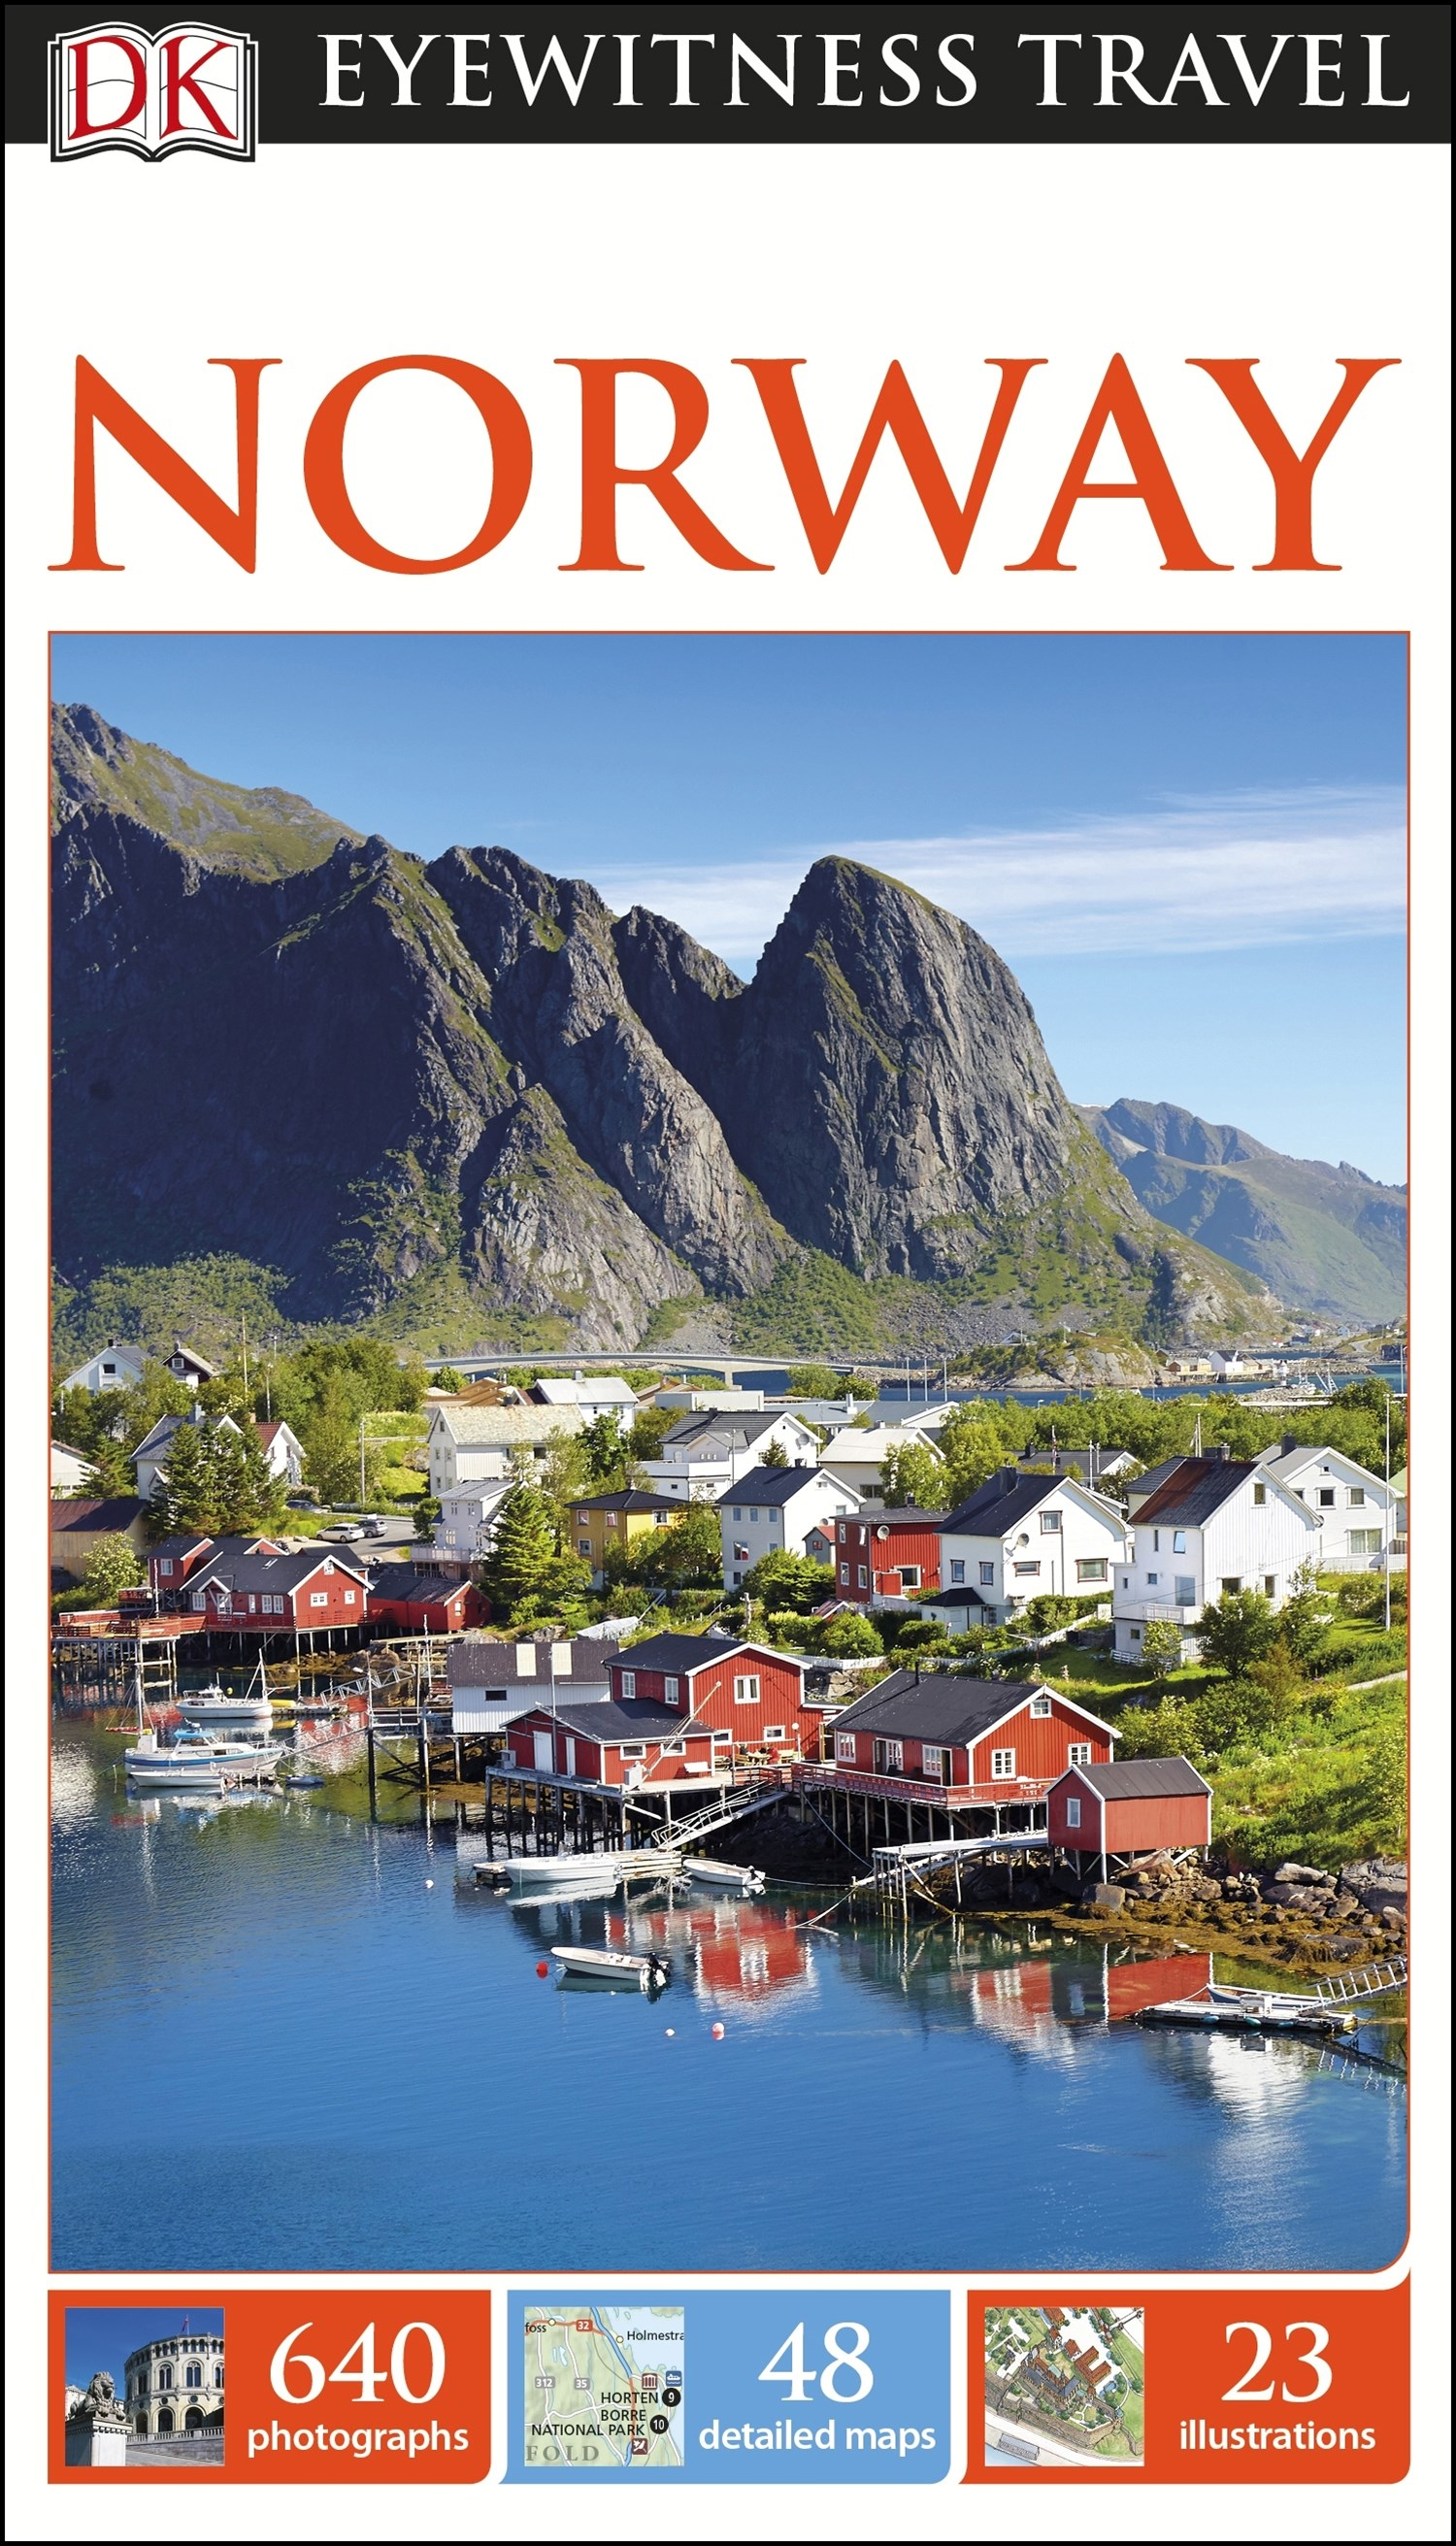 Norway: Eyewitness Travel Guide